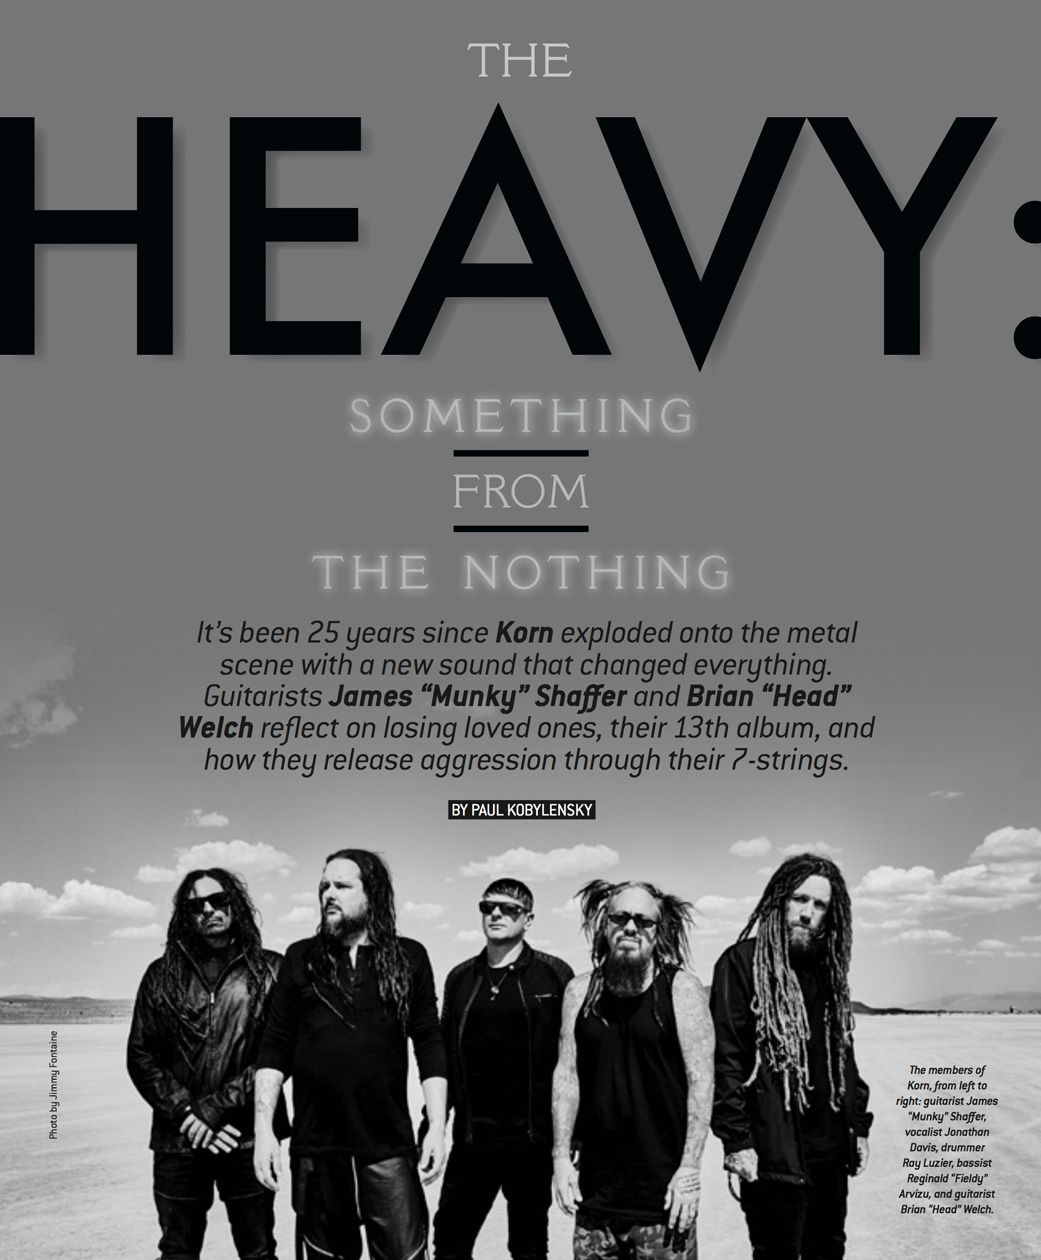 Korn's Head and Munky on Coping with Tragedy Through 7-Strings